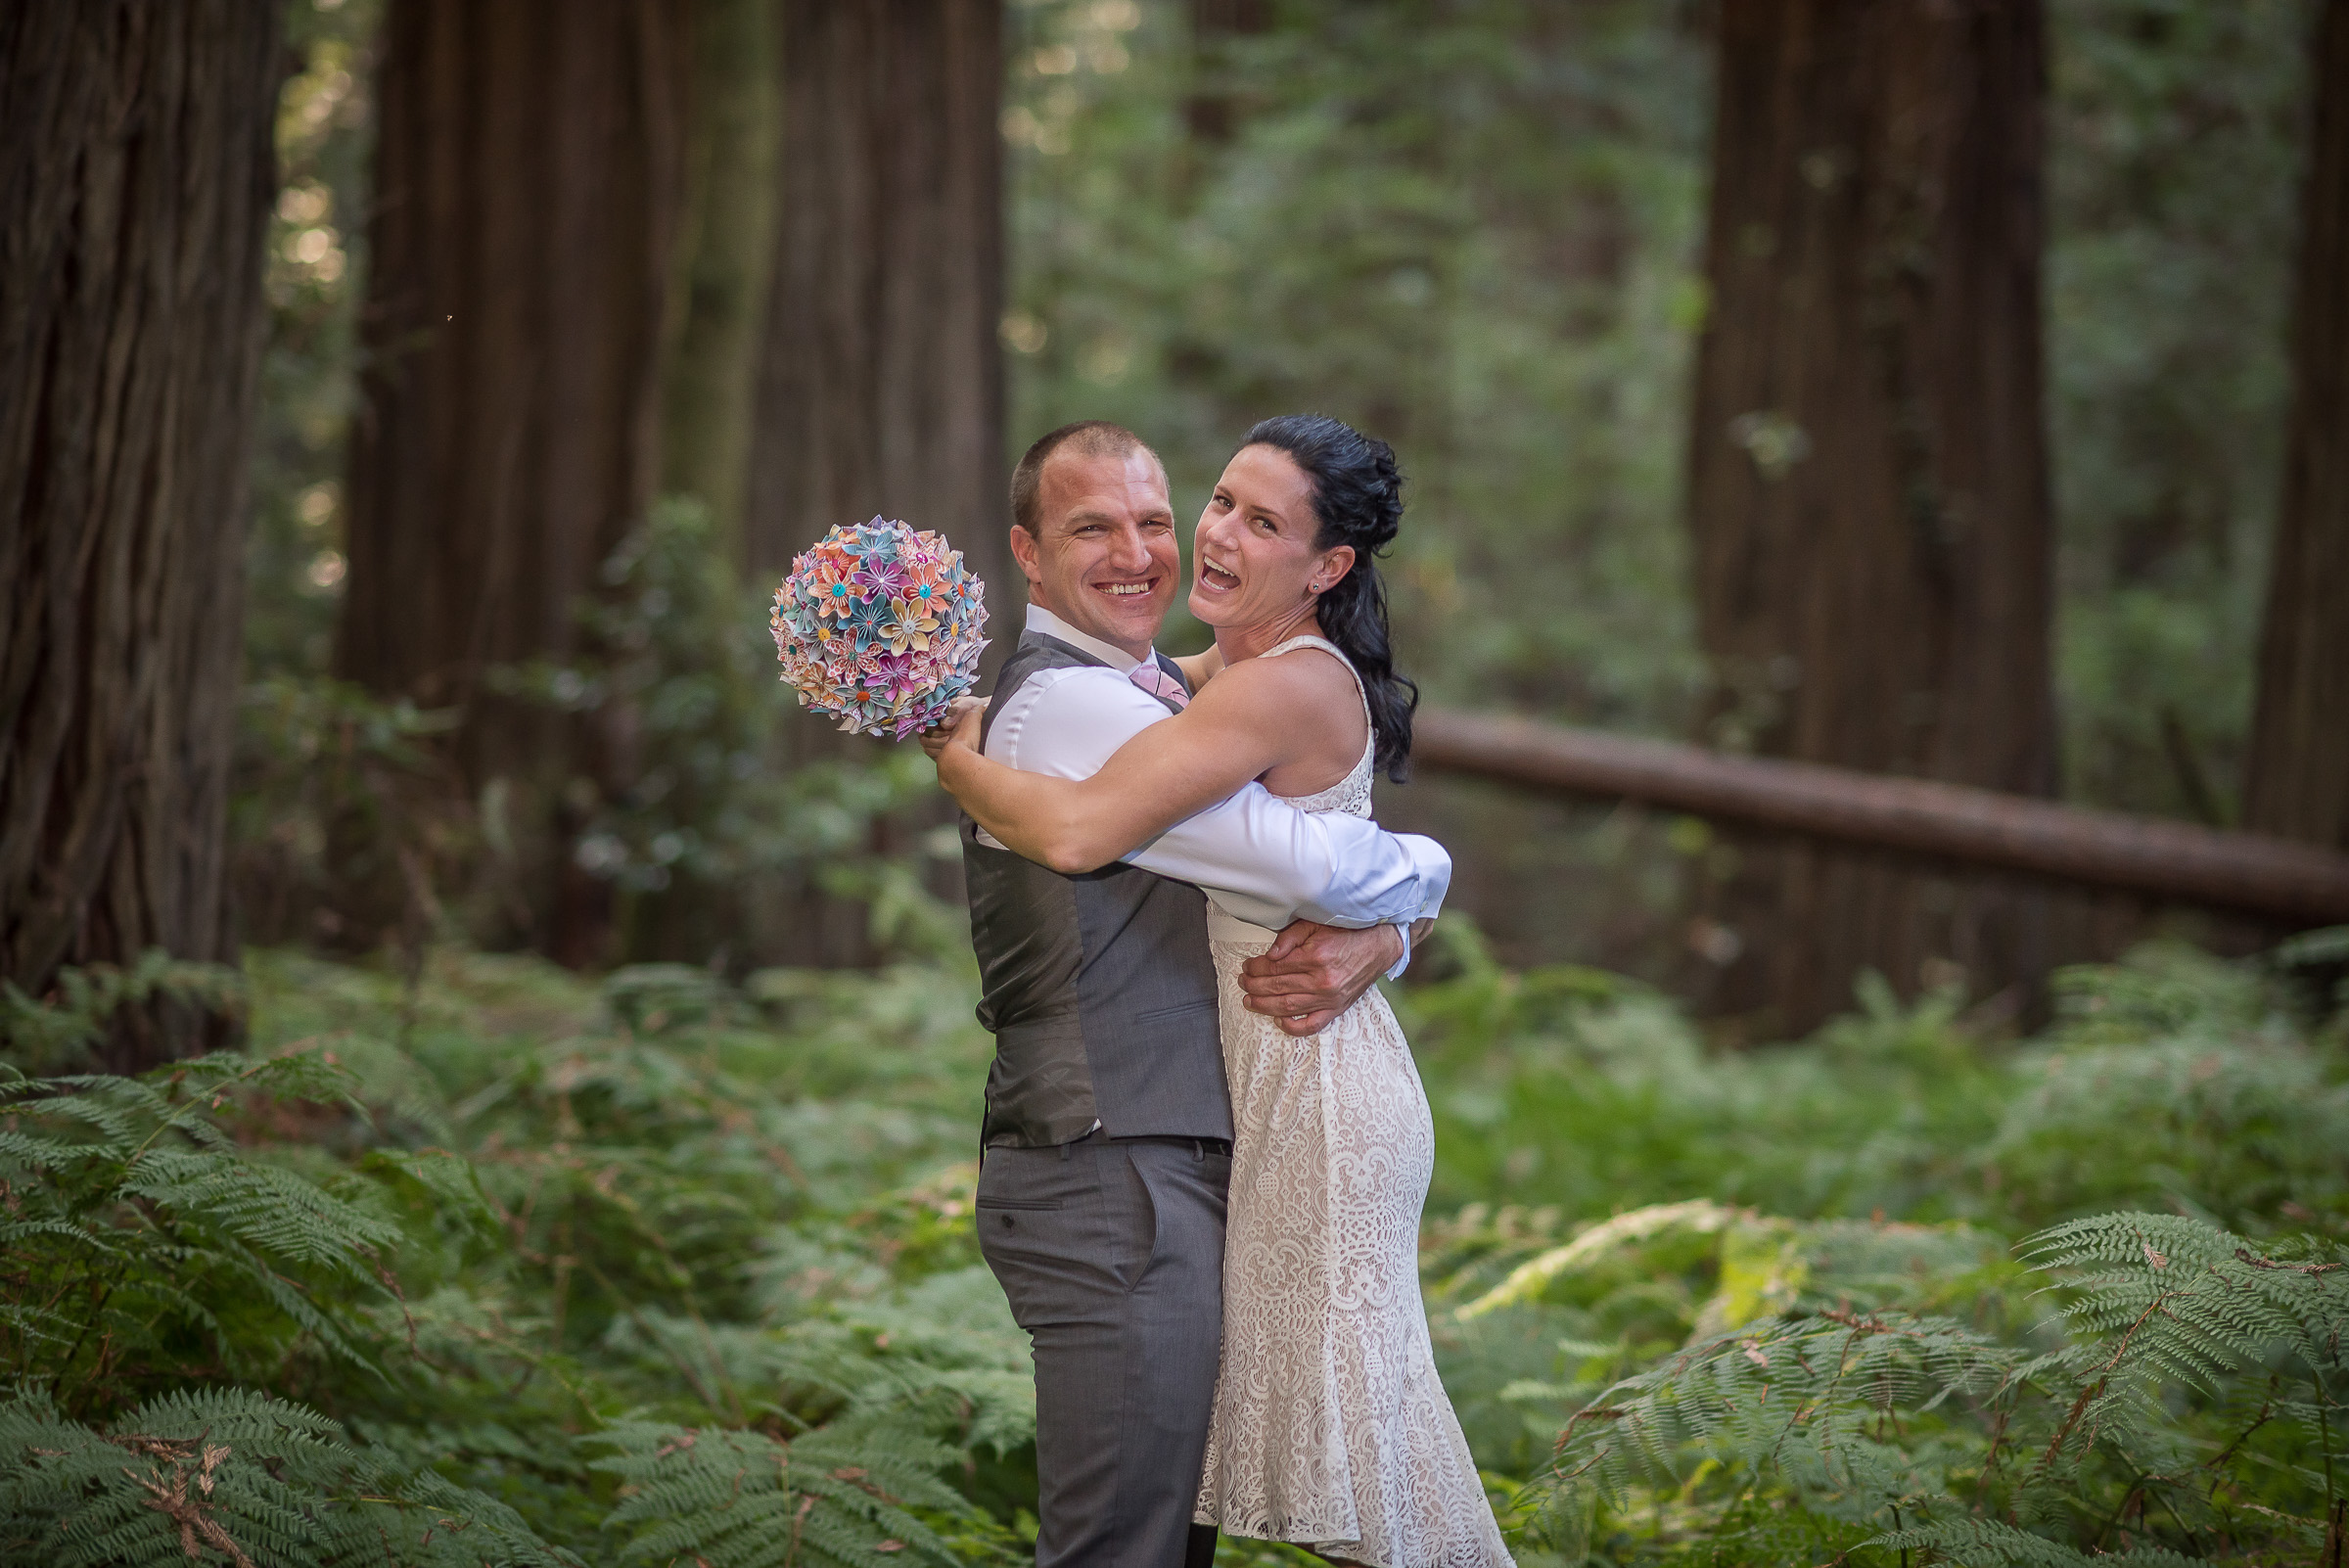 AVENUE OF THE GIANTS MAGICAL ELOPEMENT PARKYS PICS-8.JPG